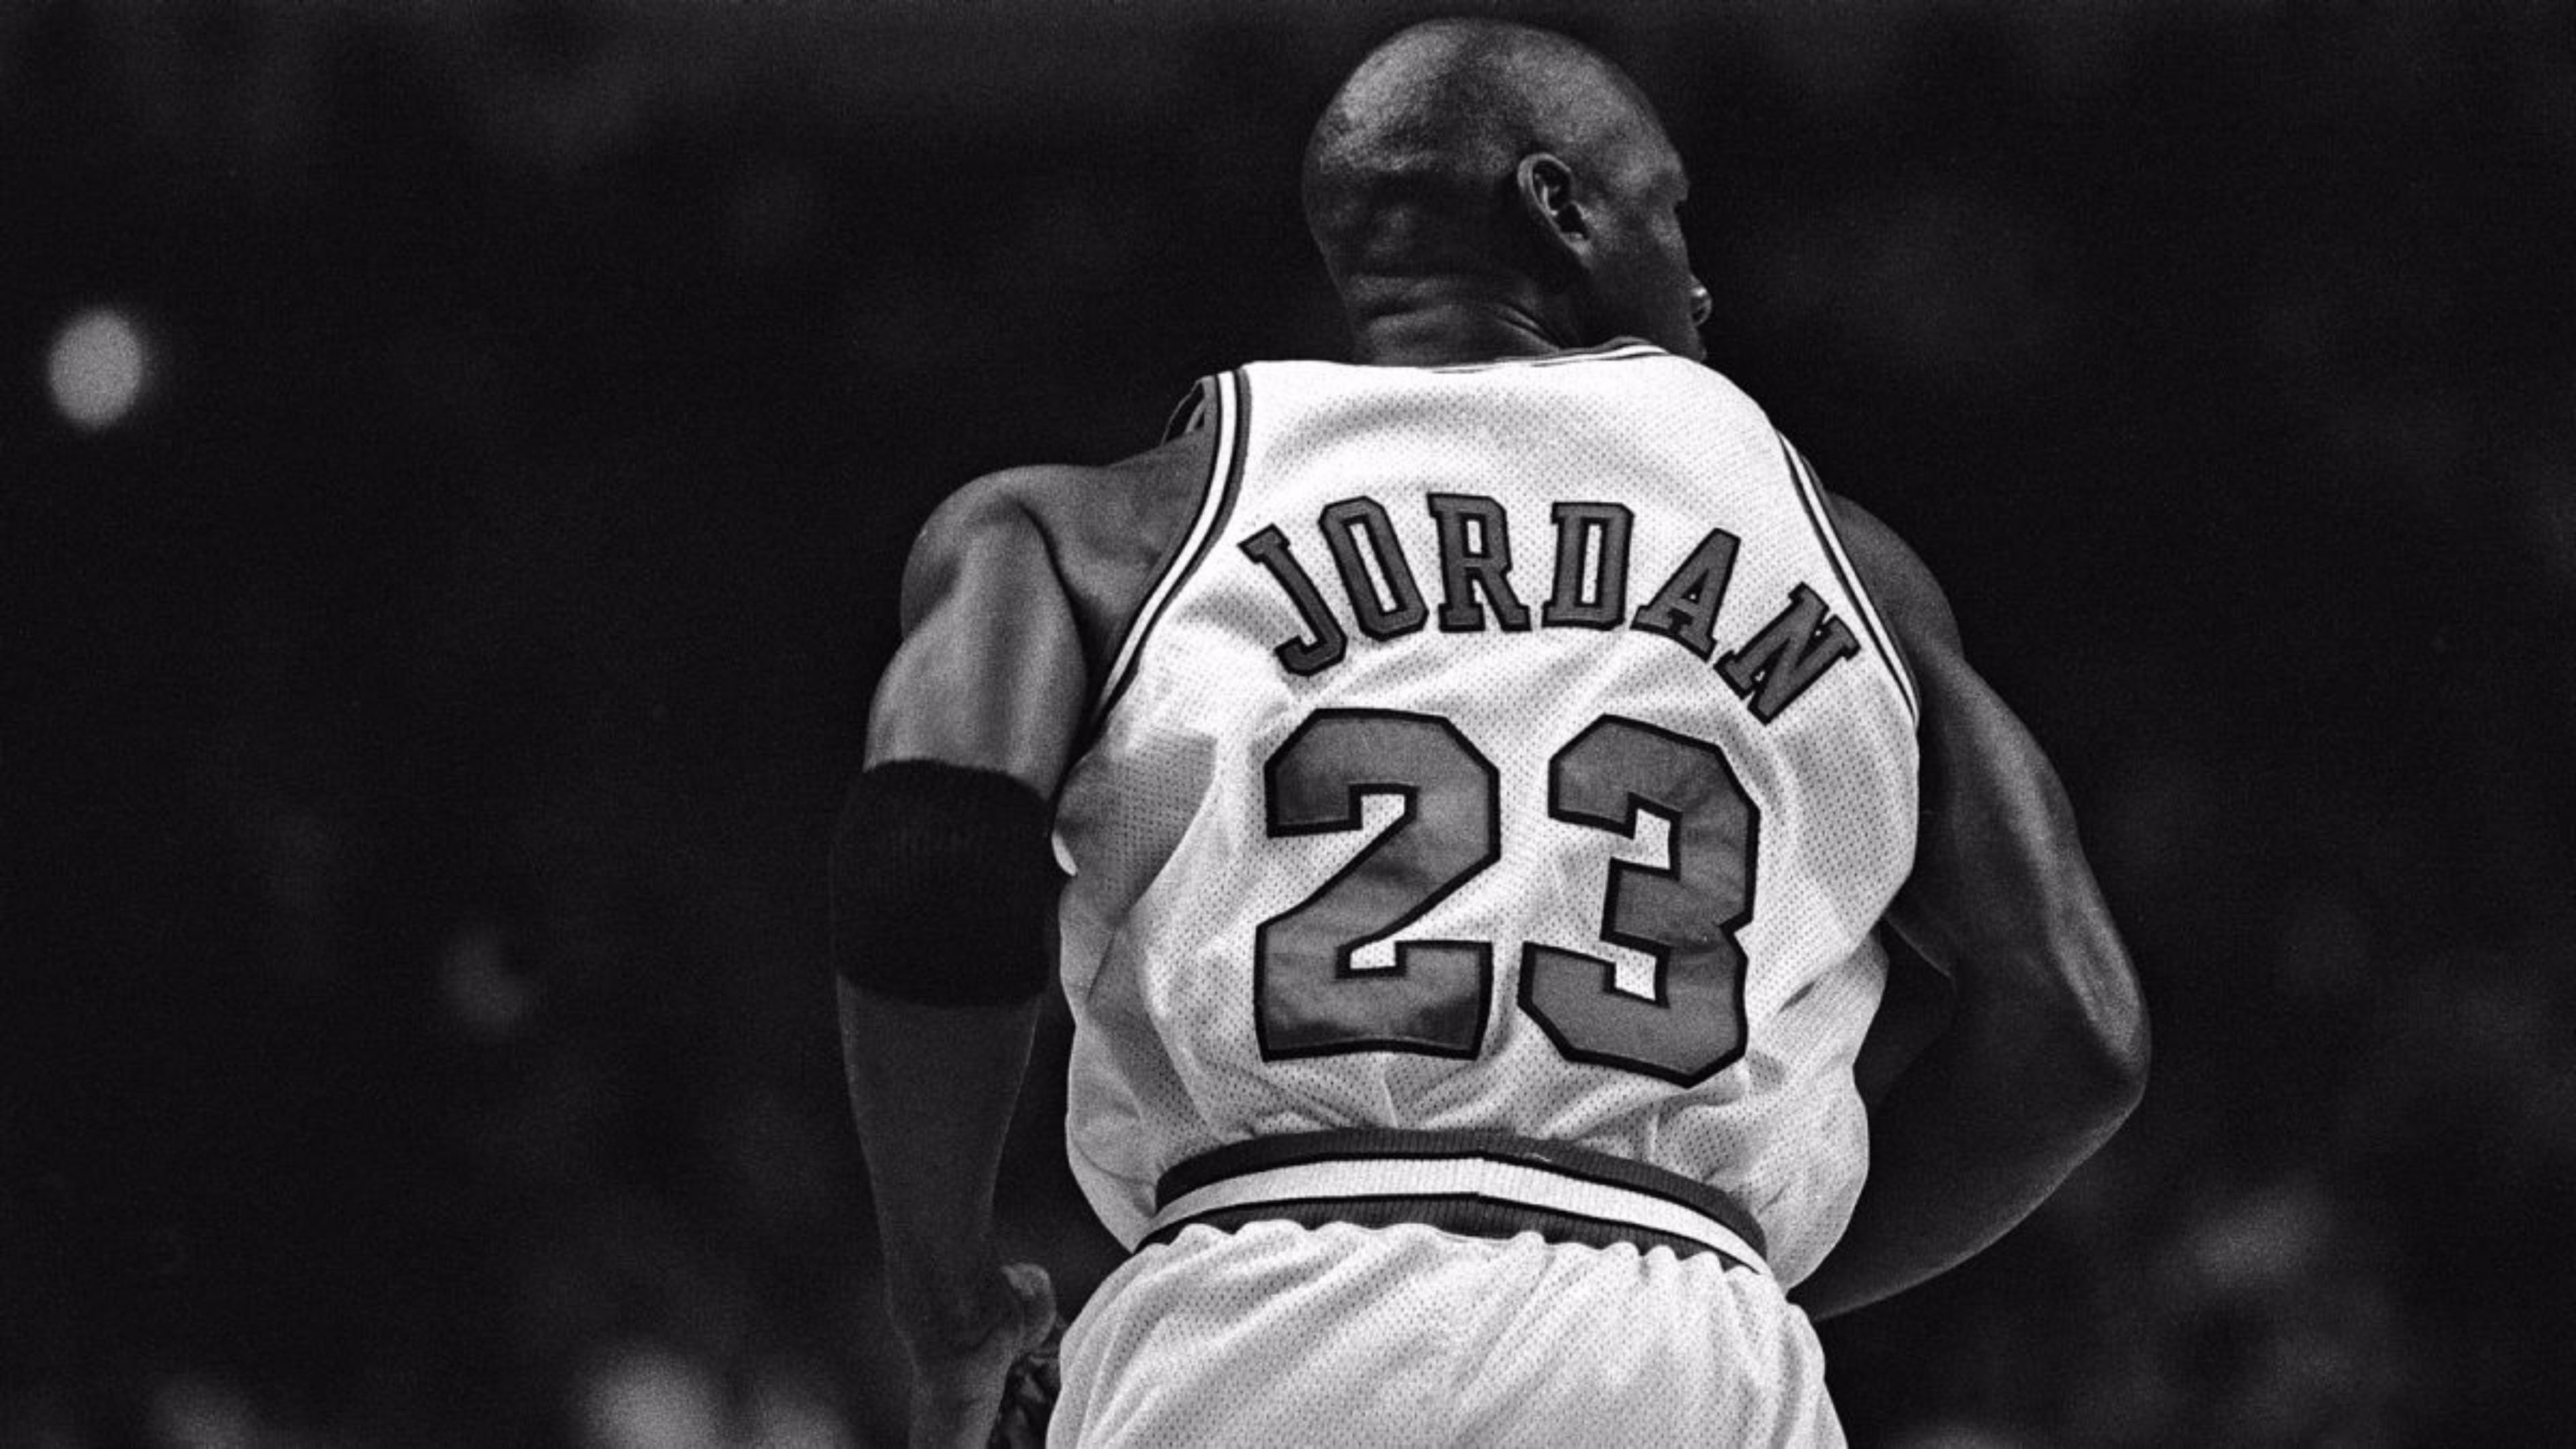 3840x2160 - Michael Jordan Wallpapers 3